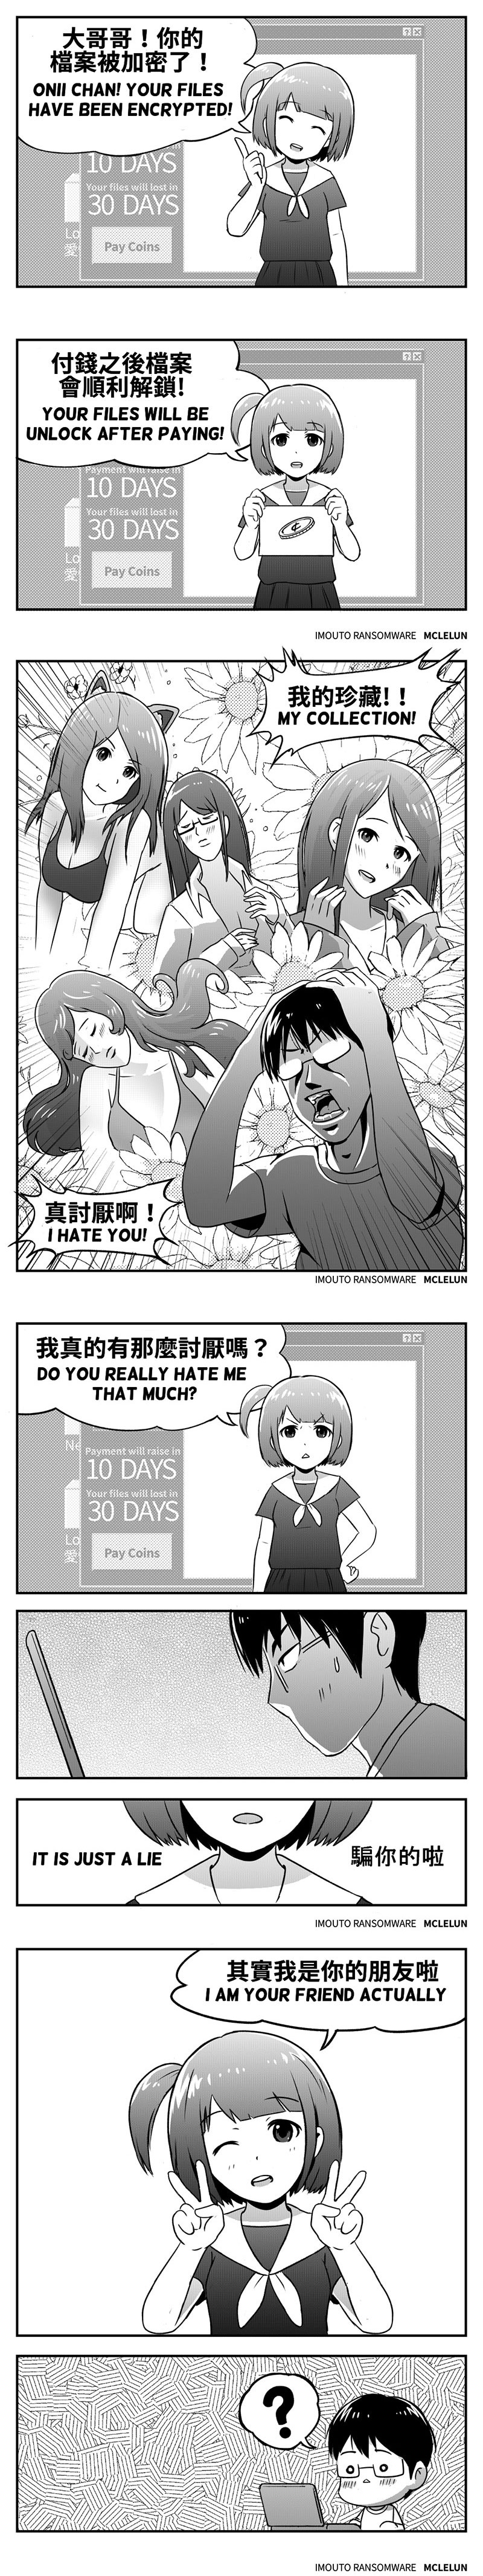 imouto ransomware part 2 by mclelun